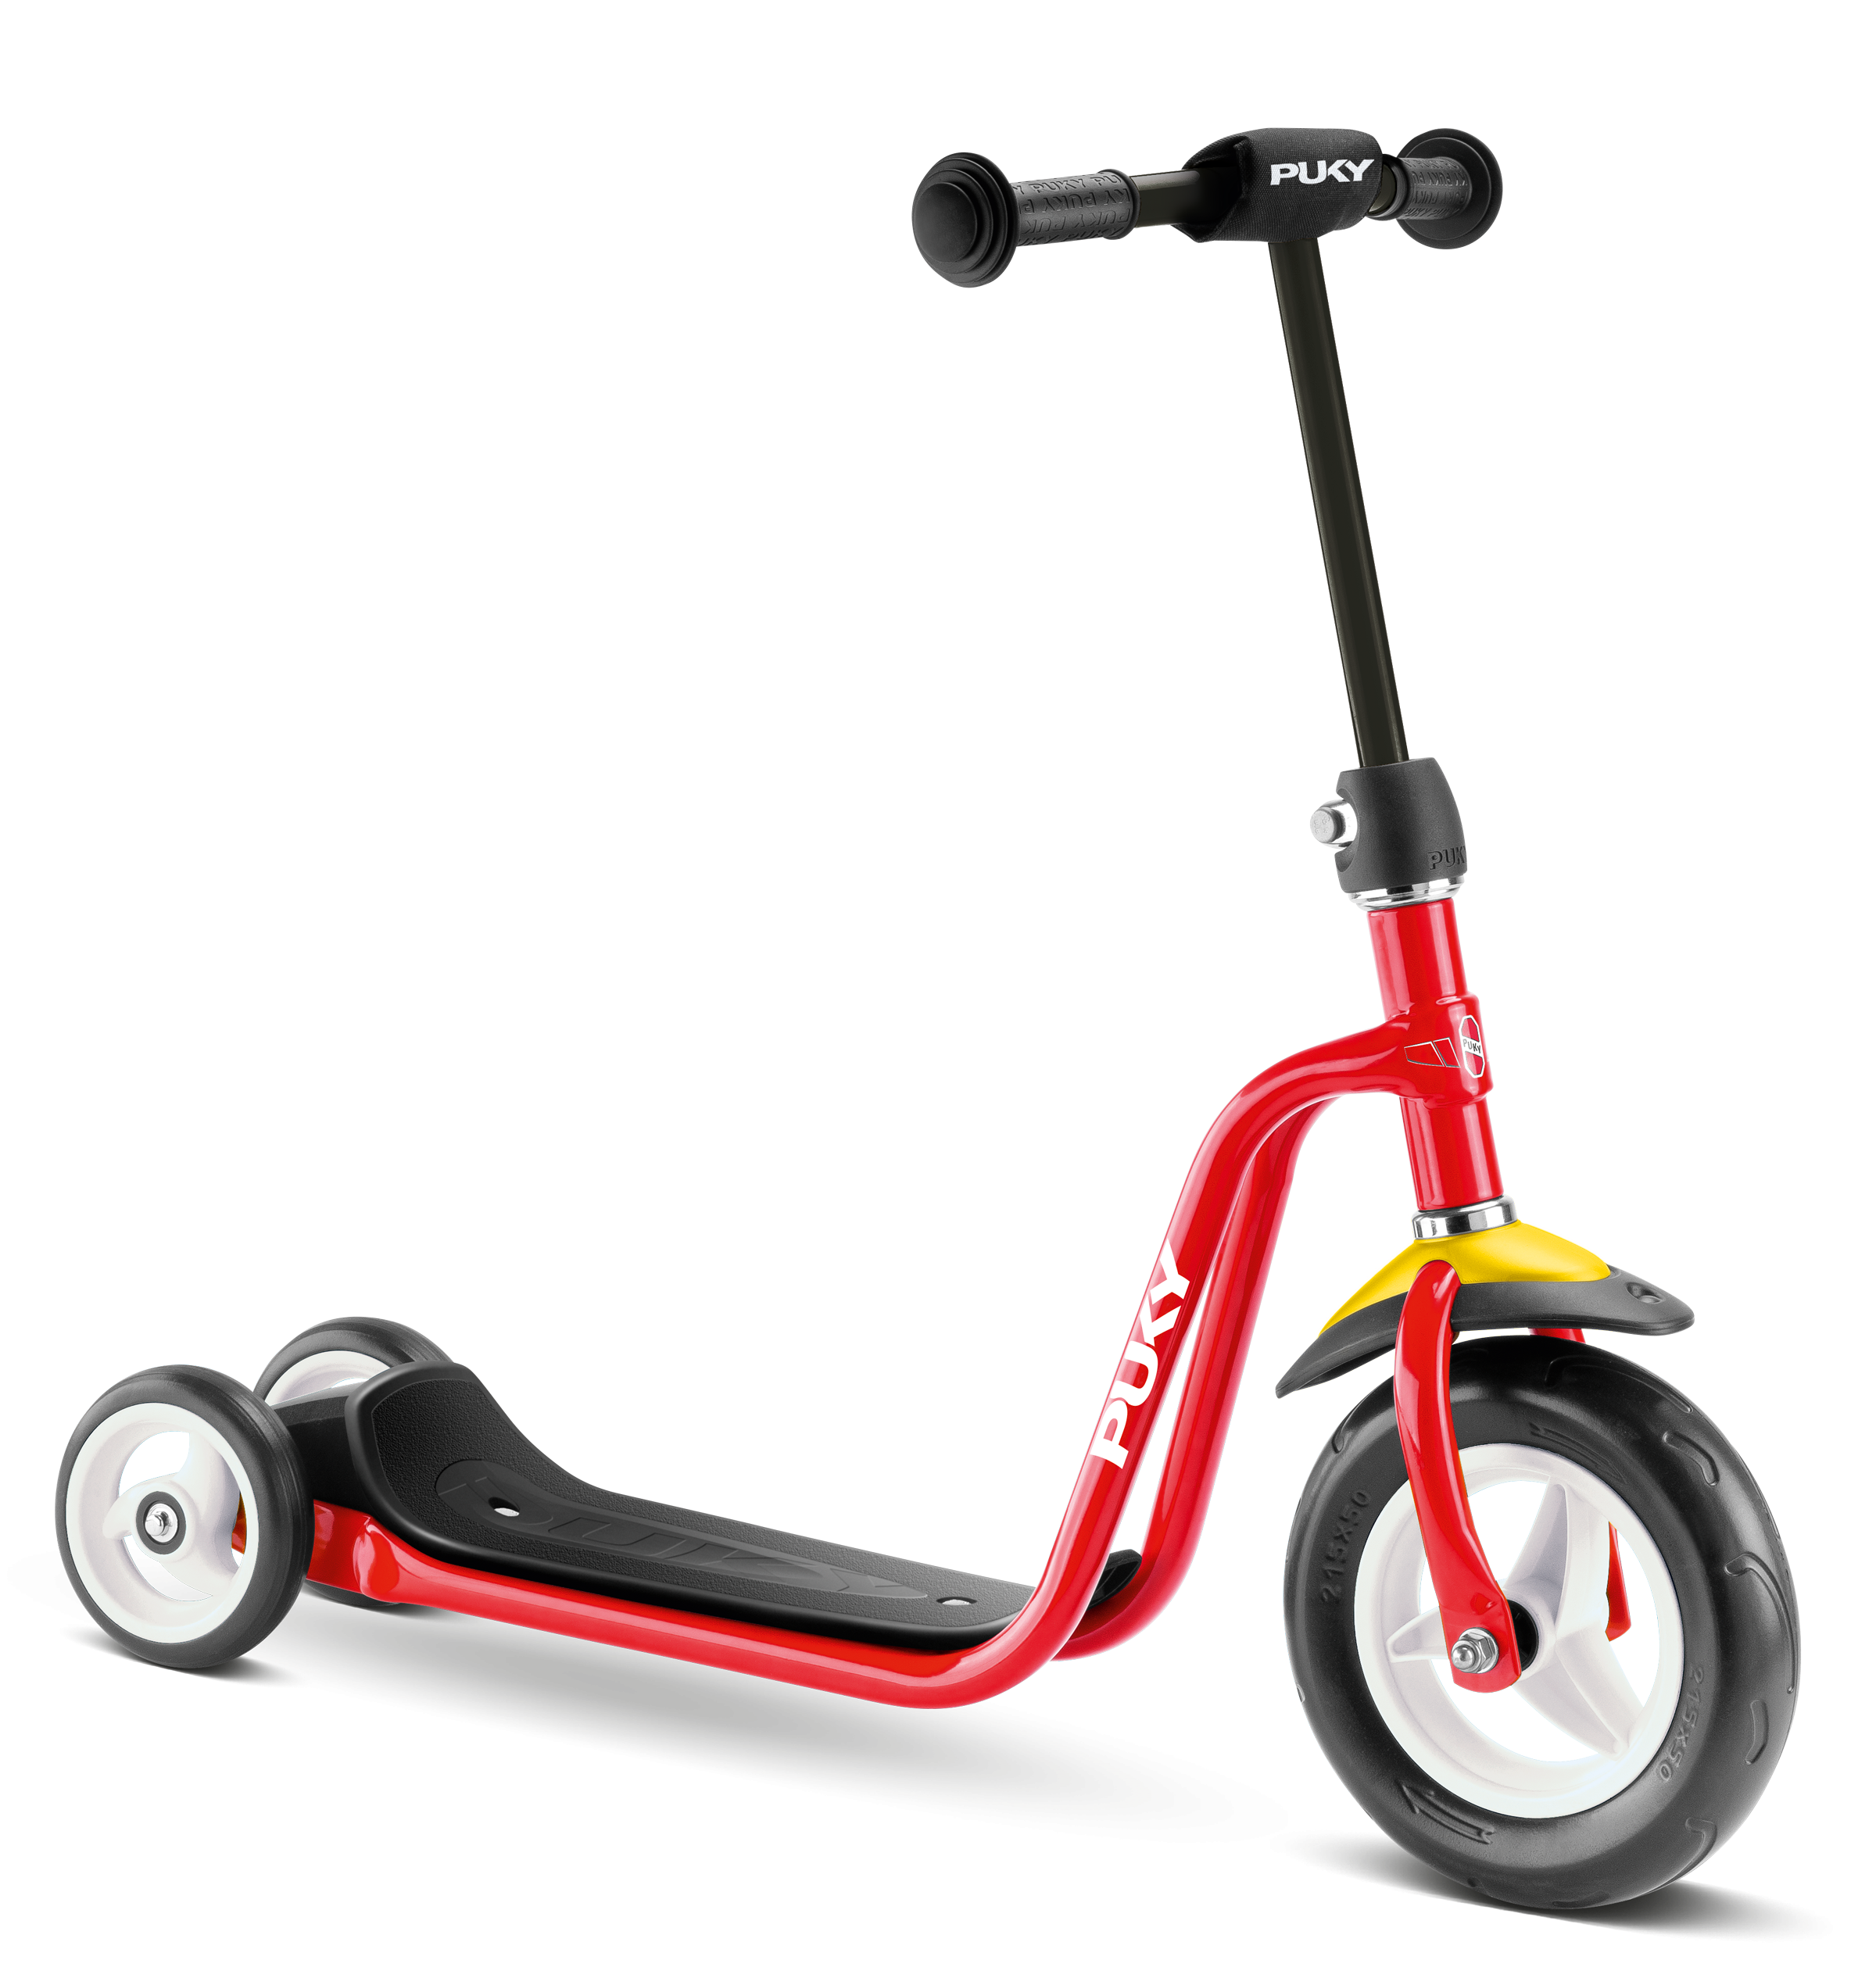 PUKY - R1 Scooter - Red (5174)